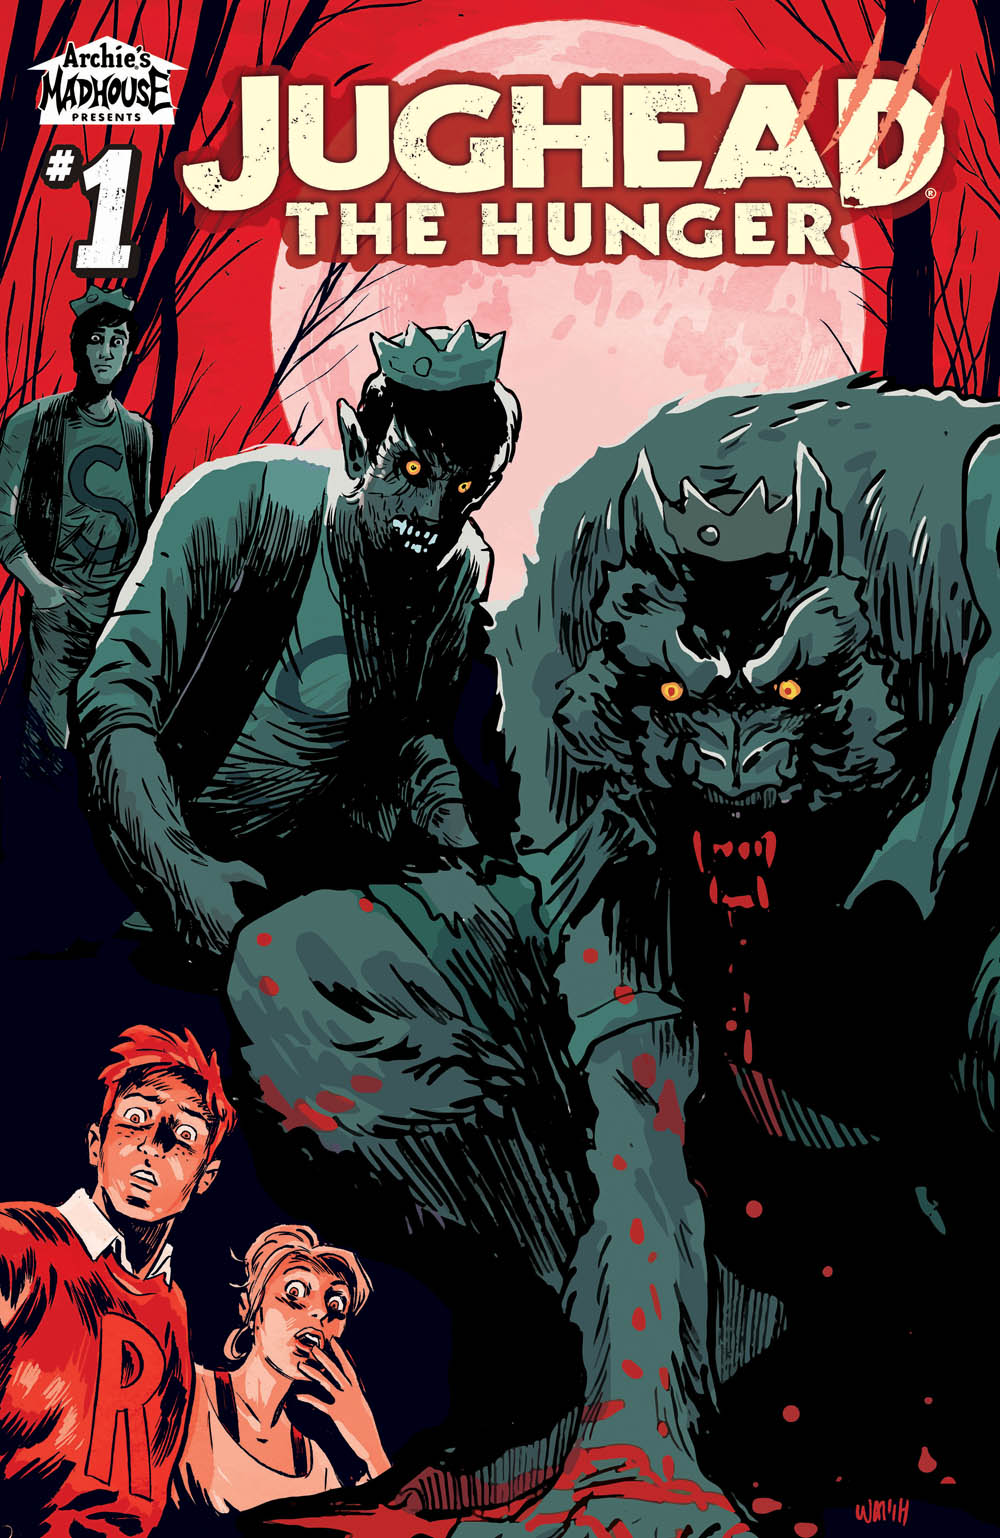 Archie Preview: Jughead the Hunger #1